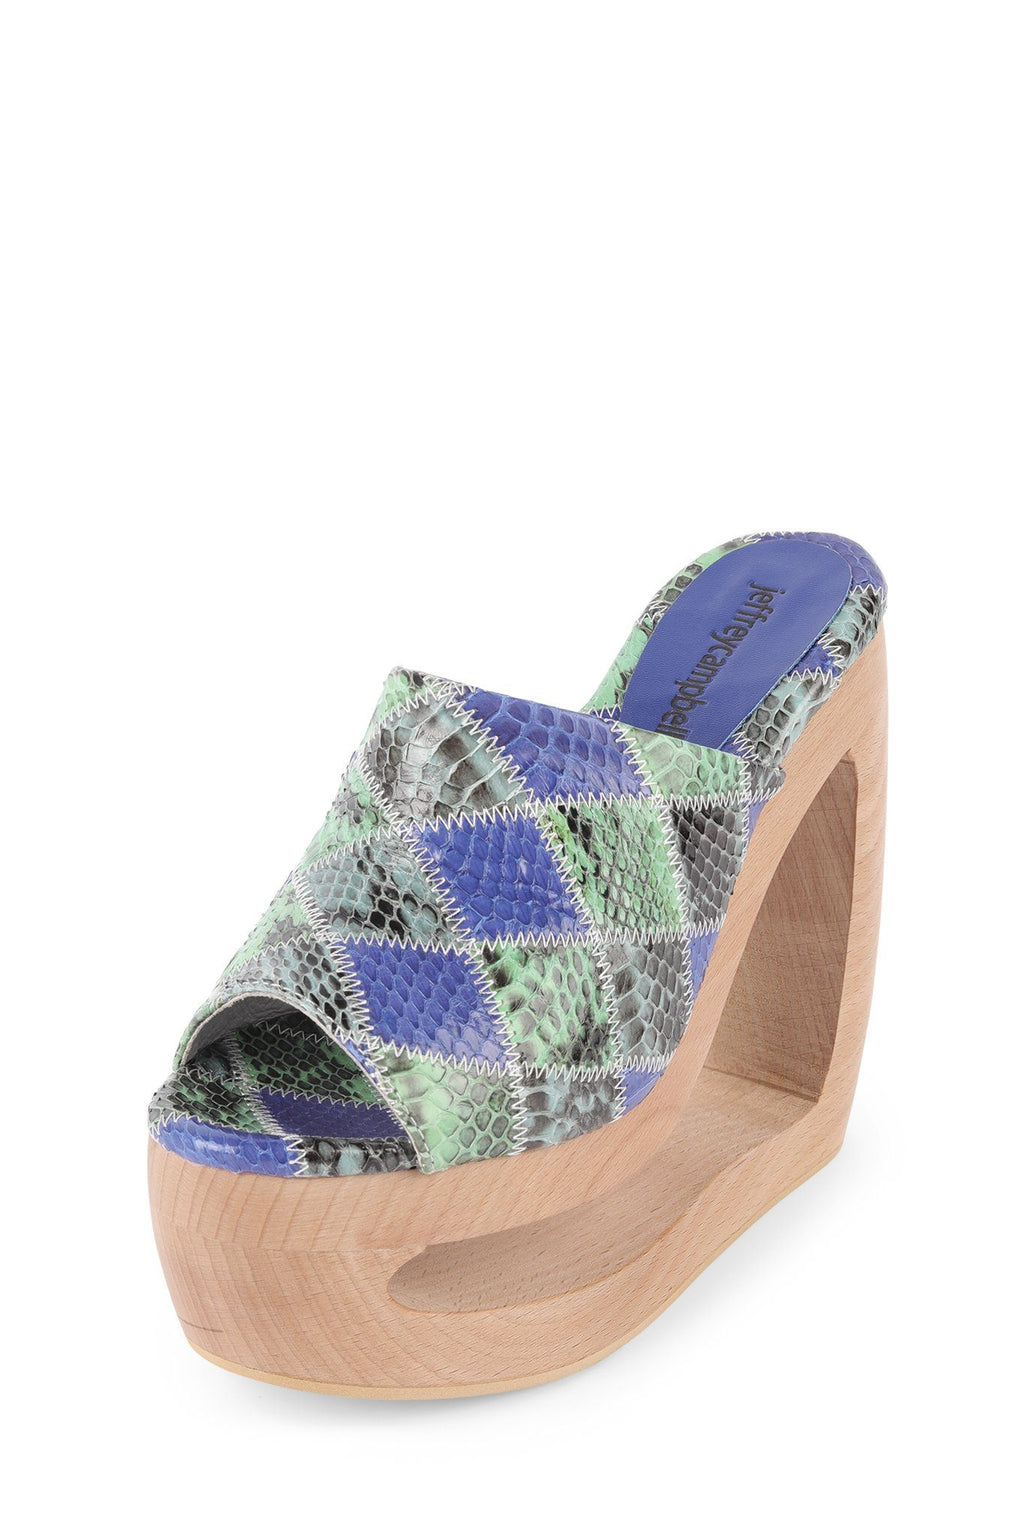 BLAZER Wedge Sandal HS